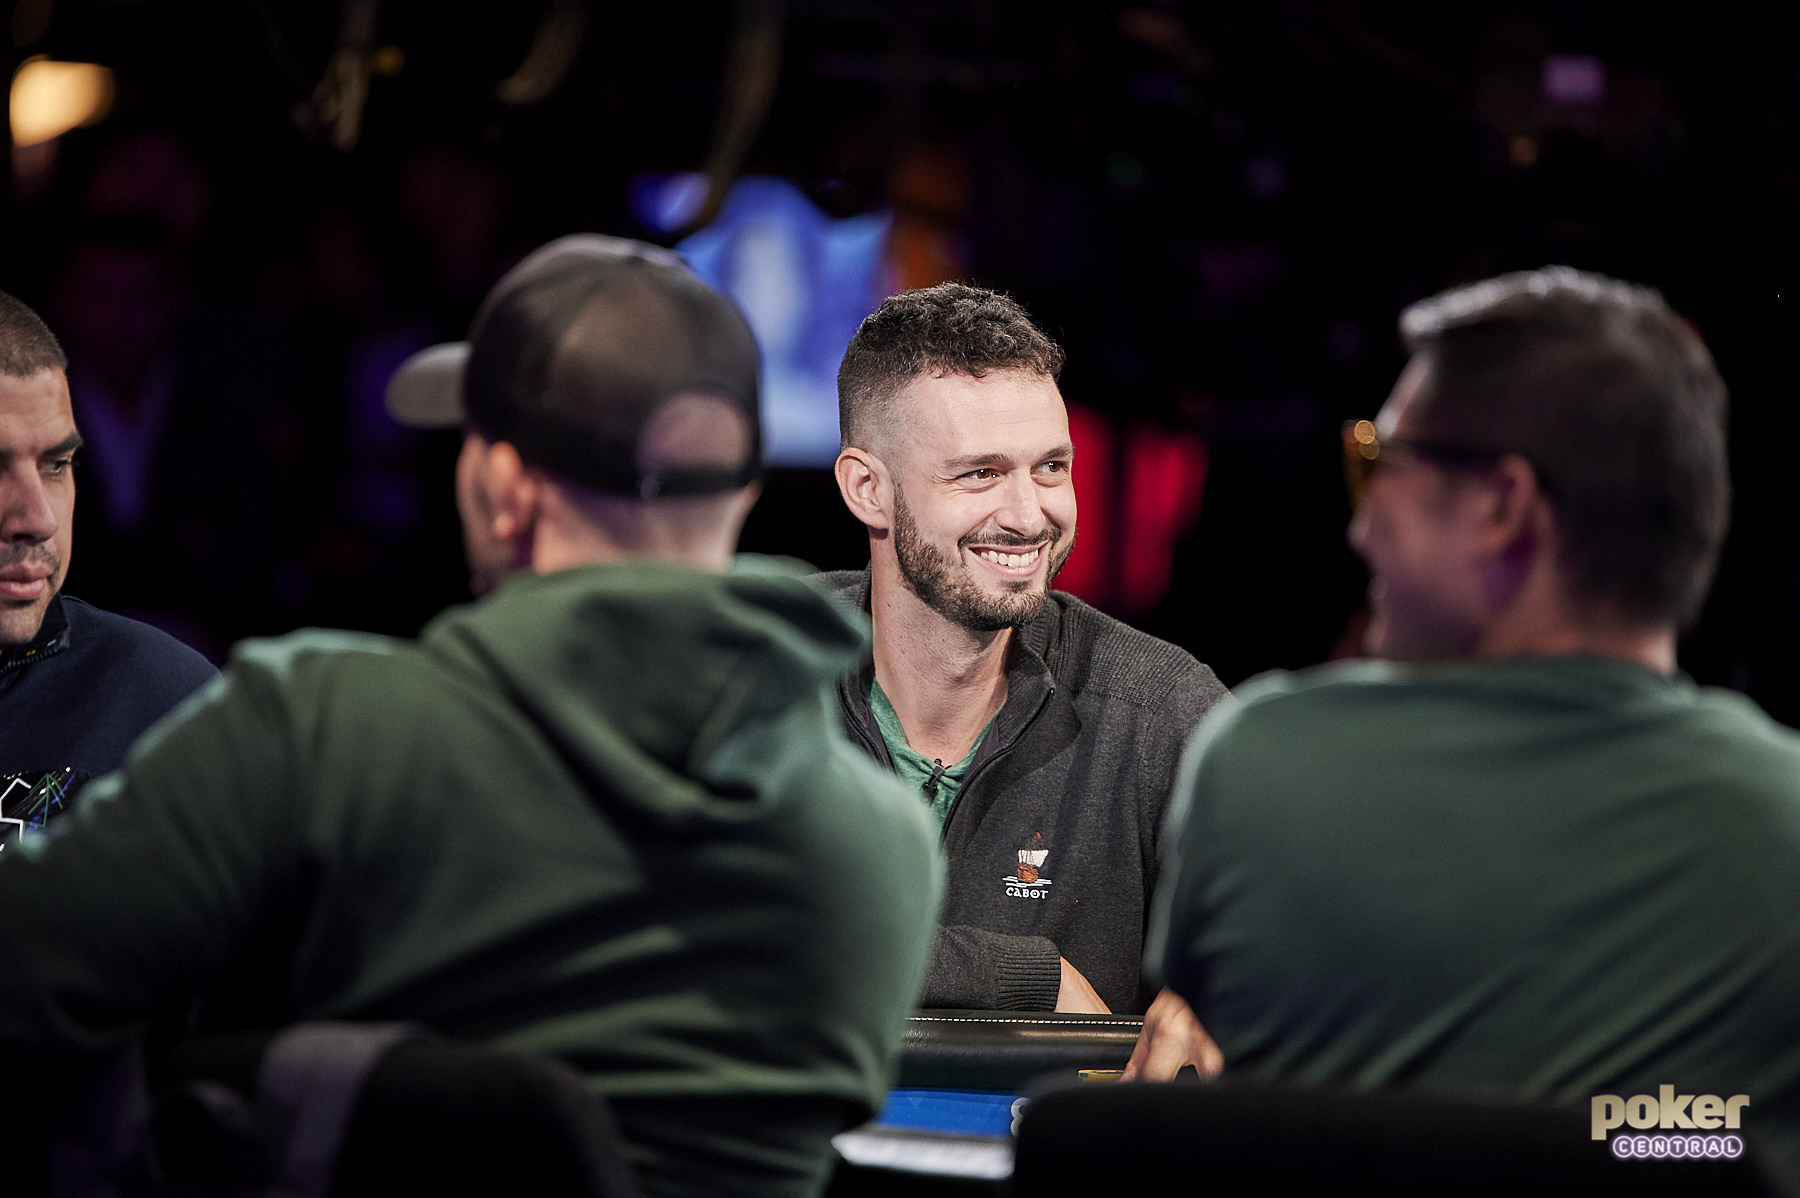 Alex Livingston remains in the hunt with five players remaining in the WSOP Main Event!